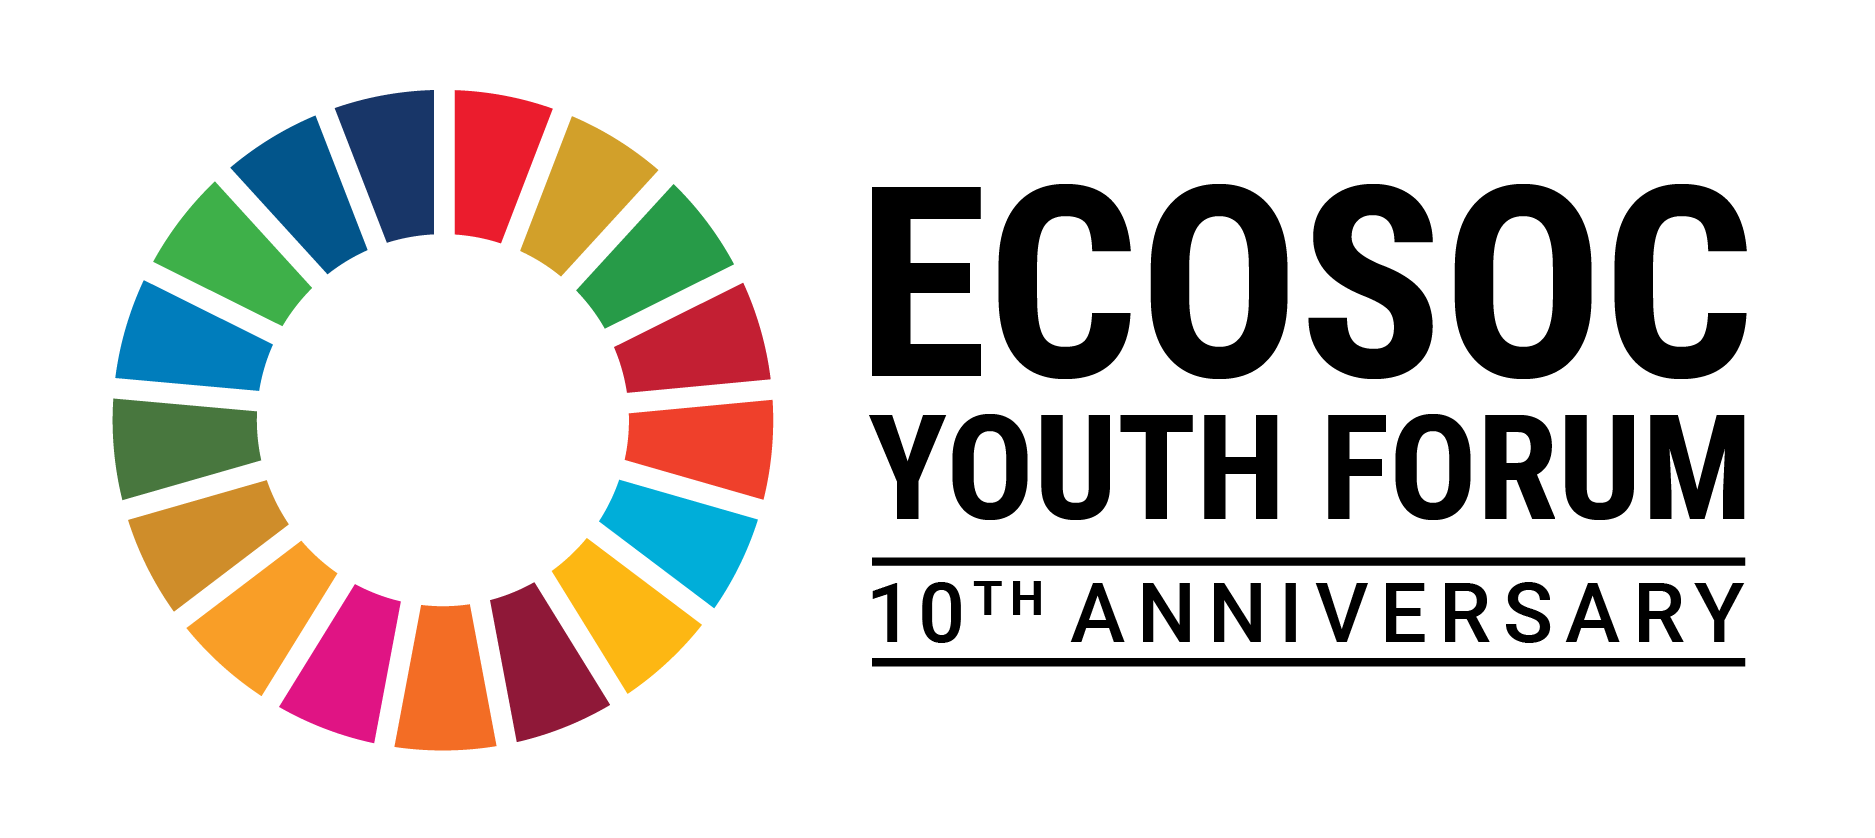 ECOSOC YOUTH FORUM 2021 – commemorating its 10th Anniversary